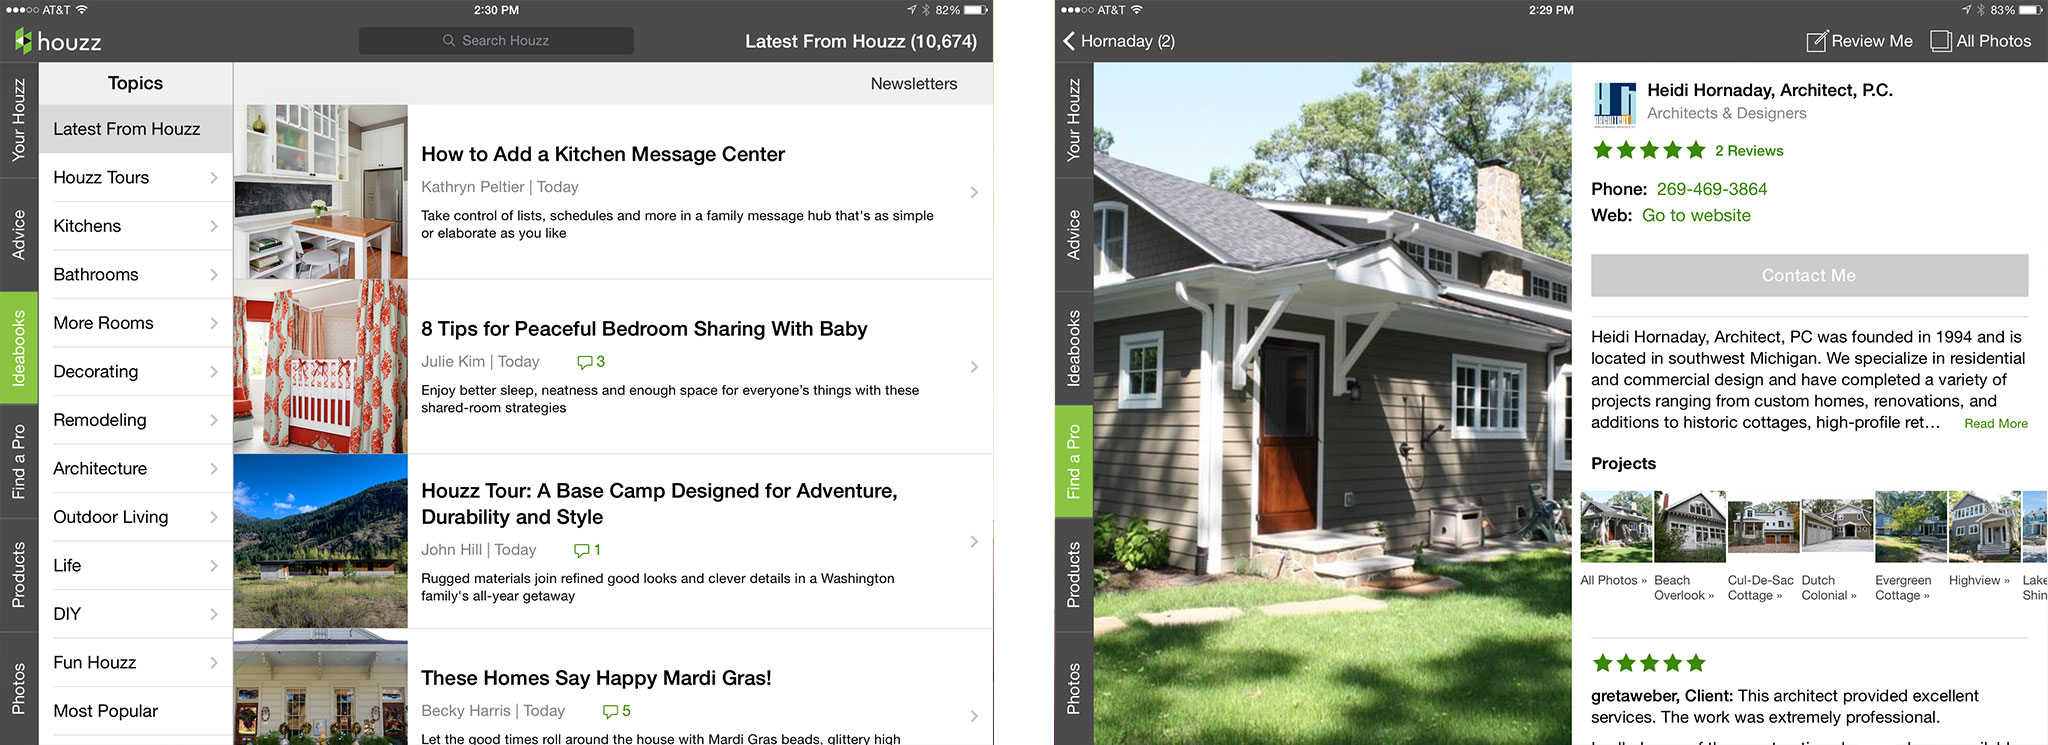 Best home design and improvement apps for iPad: Houzz